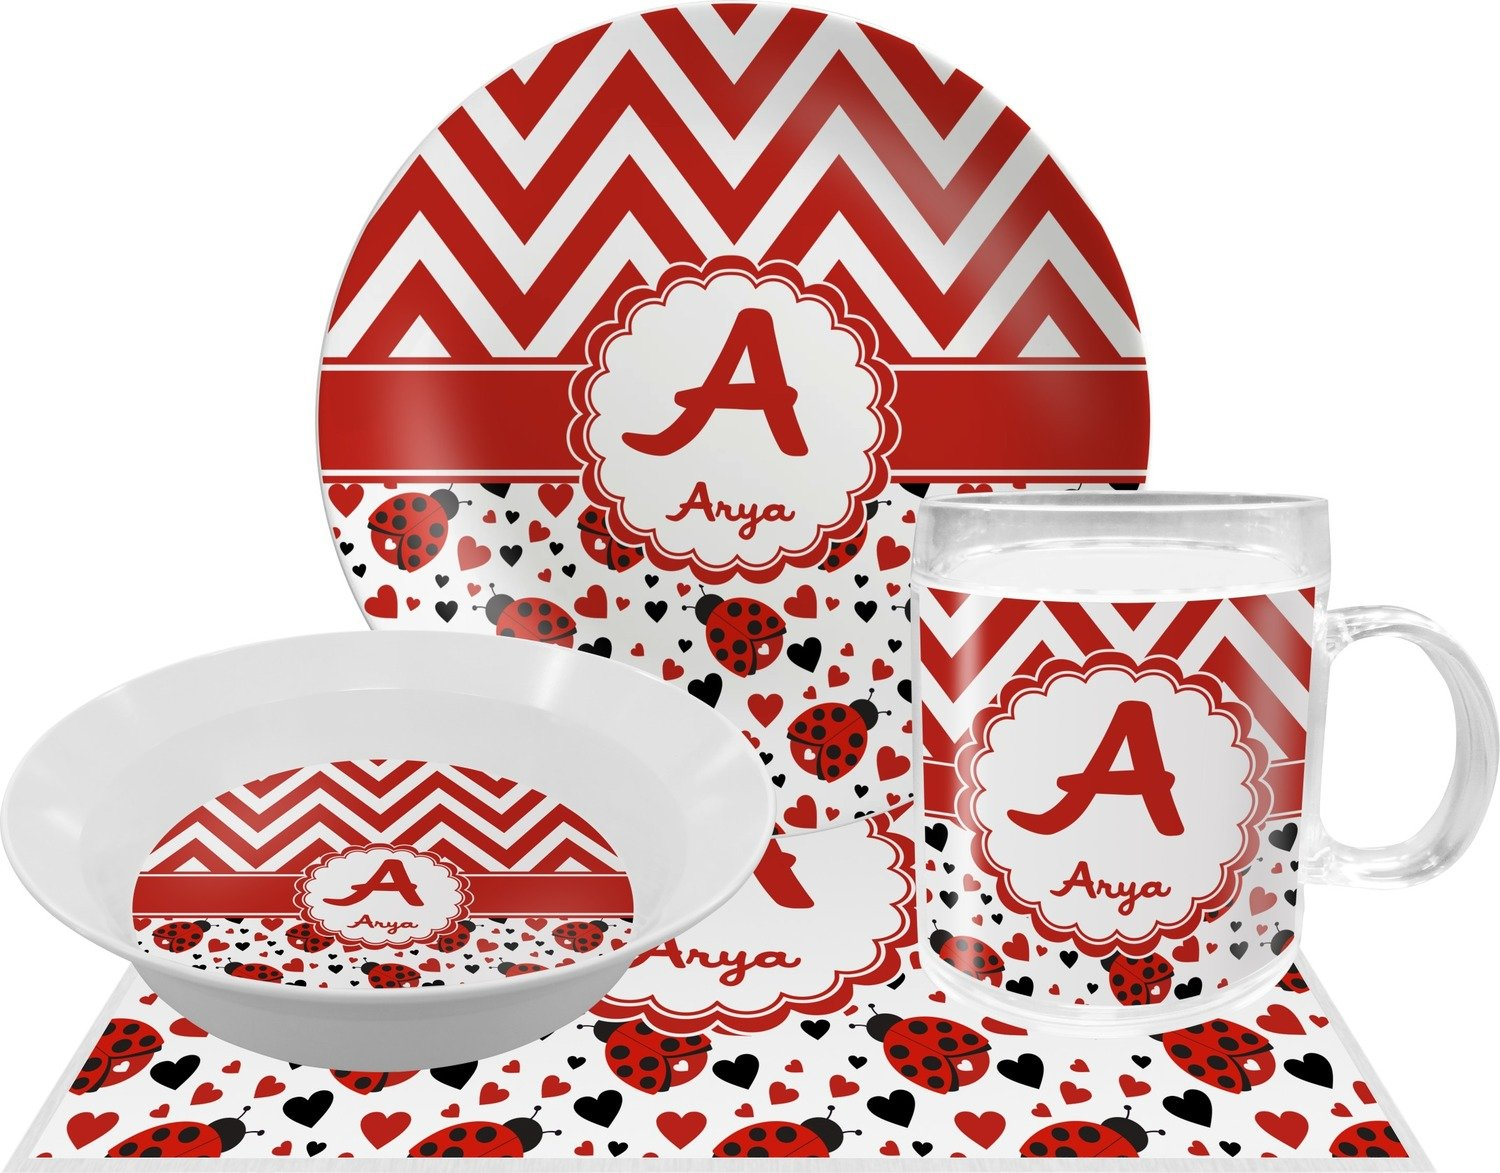 Ladybugs & Chevron Dinner Set - 4 Pc (Personalized) by RNK Shops